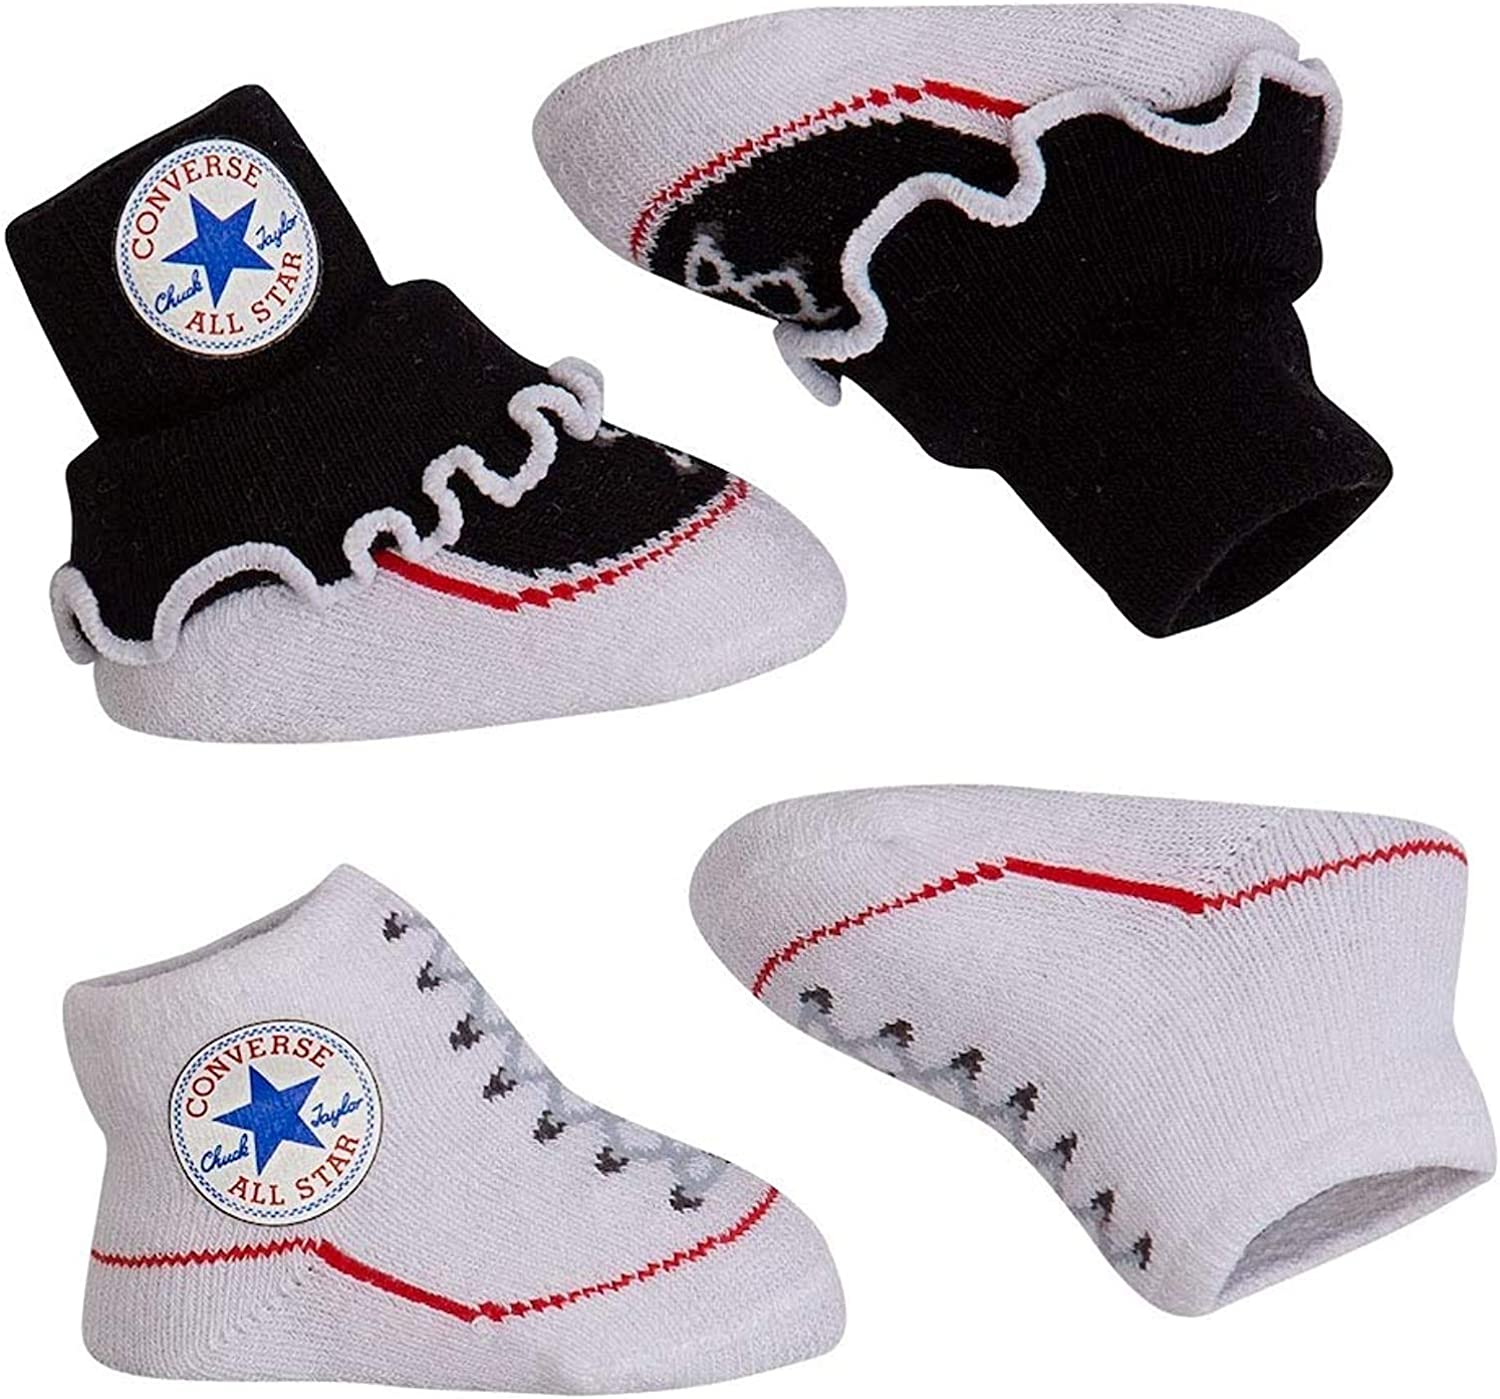 Converse Baby`s Frilly Chucks Bootie Socks 2 Pack